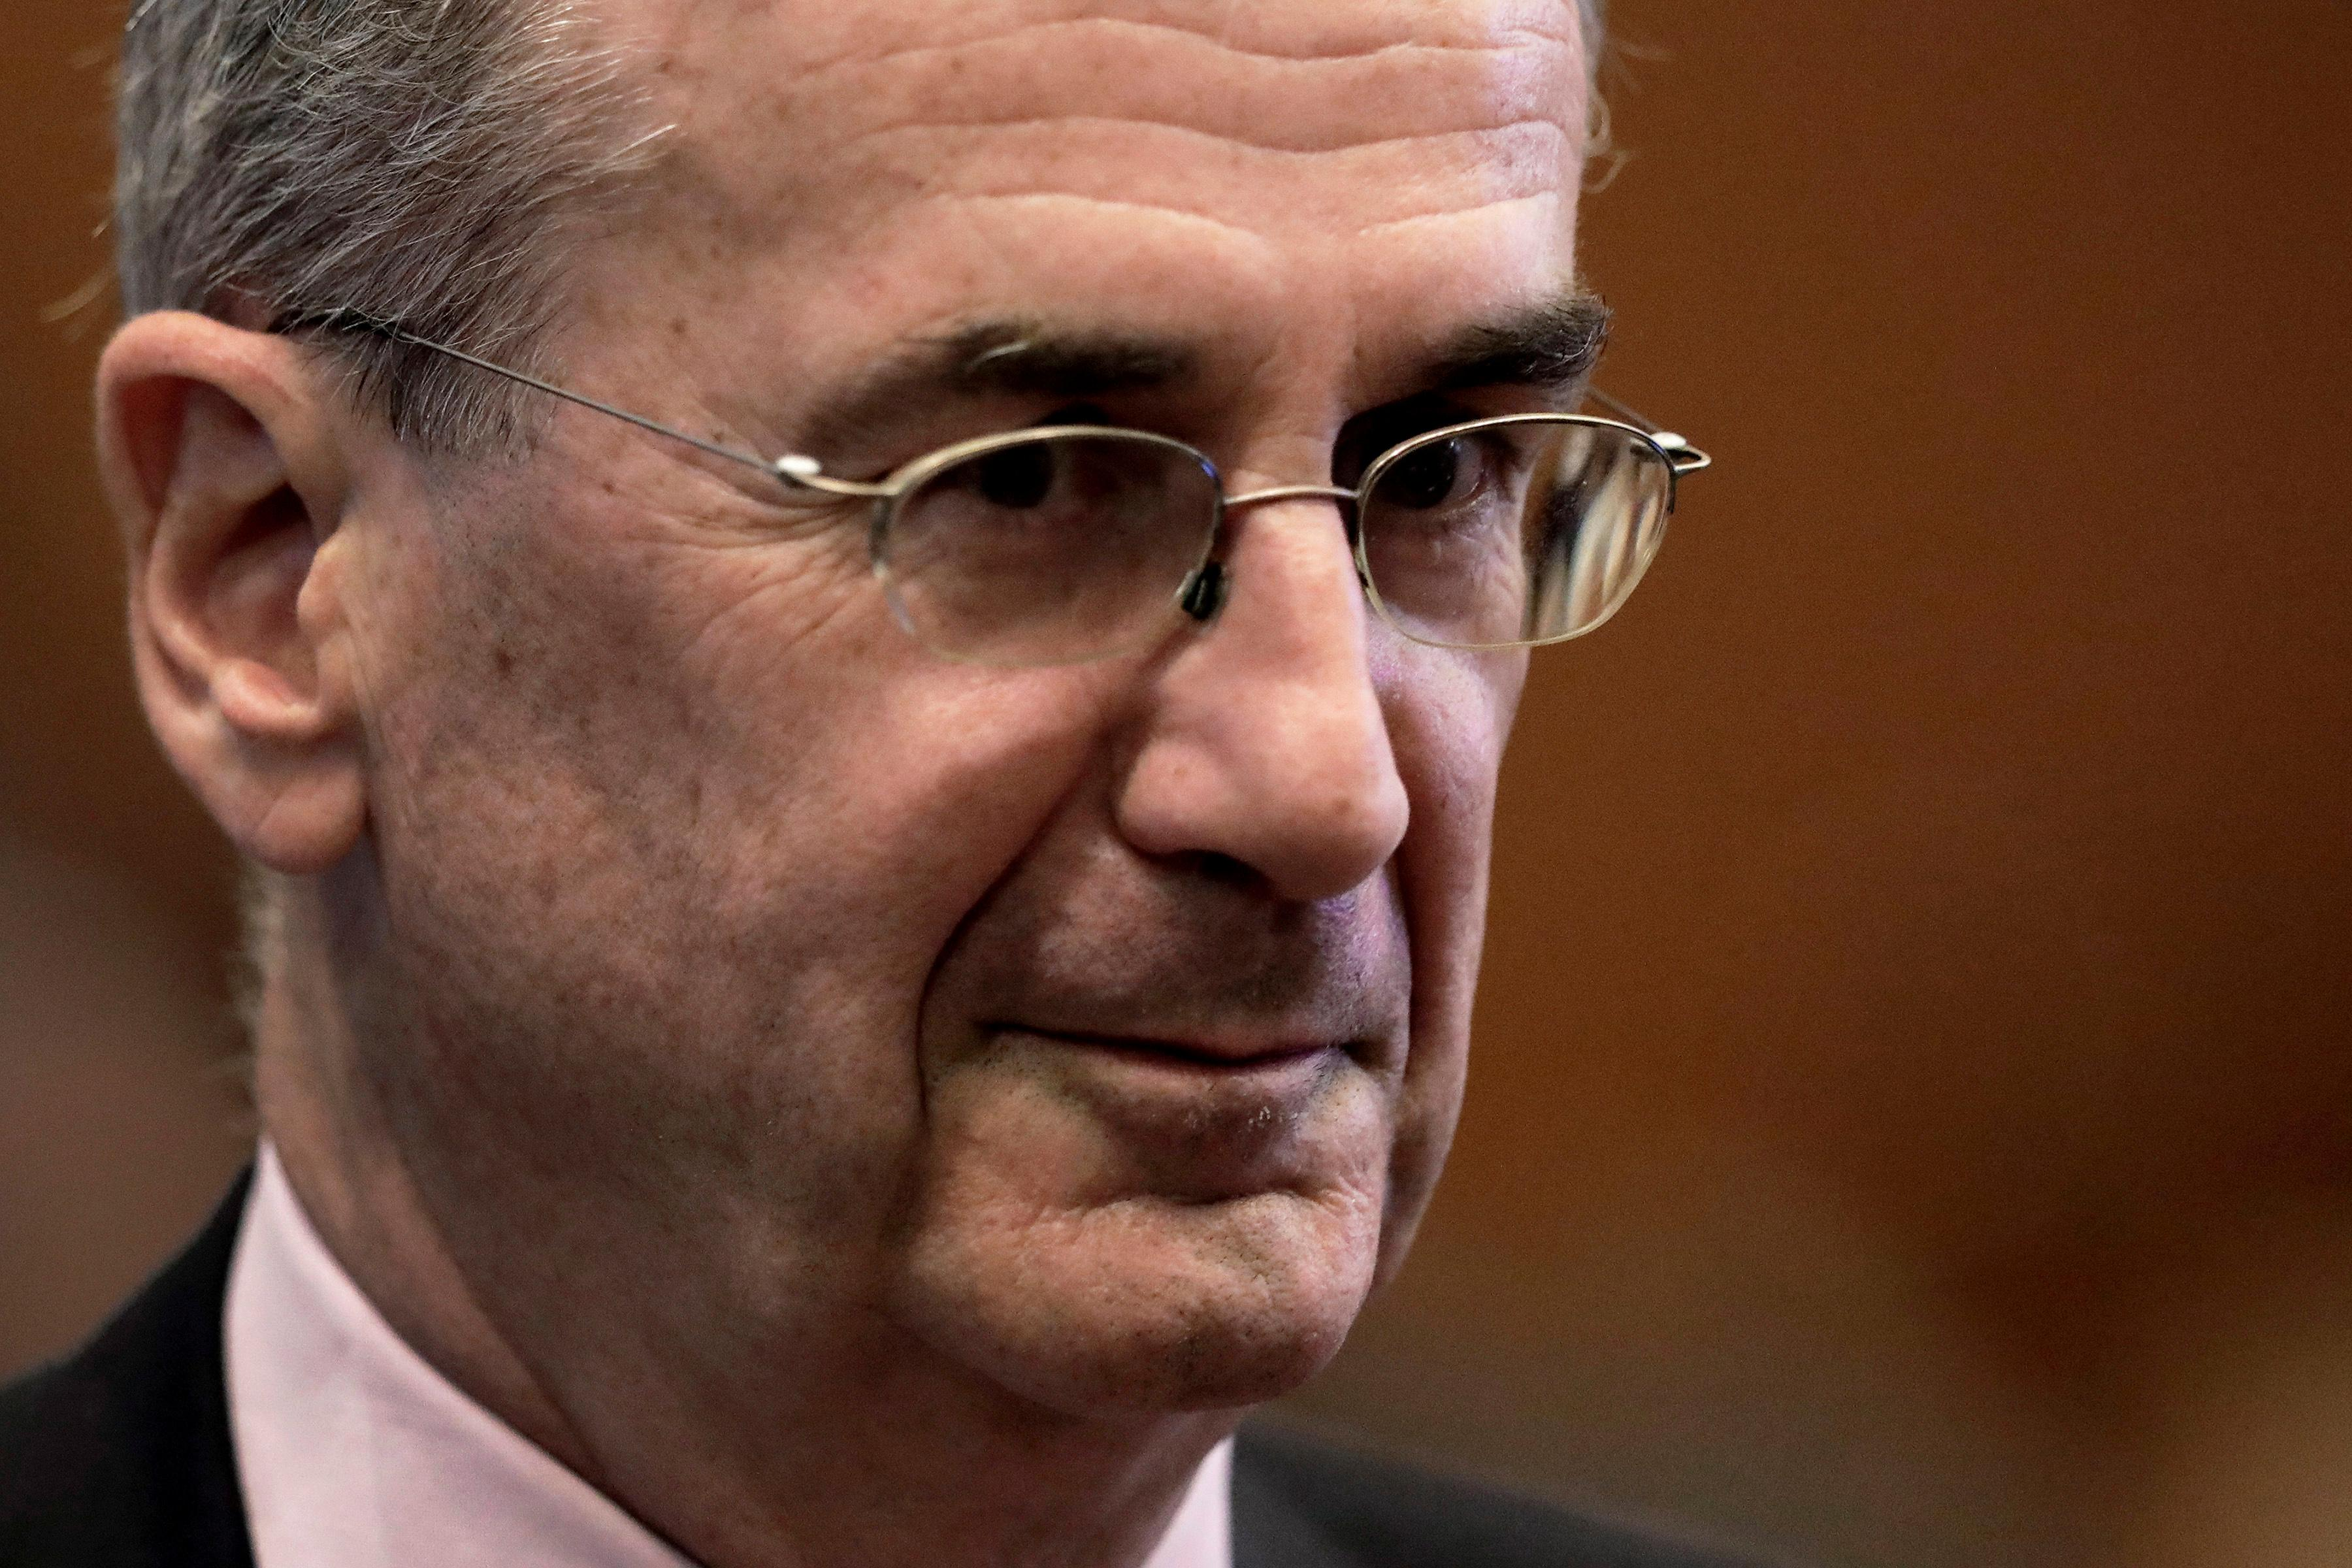 ECB's active policy justified given low inflation, risks, Villeroy says